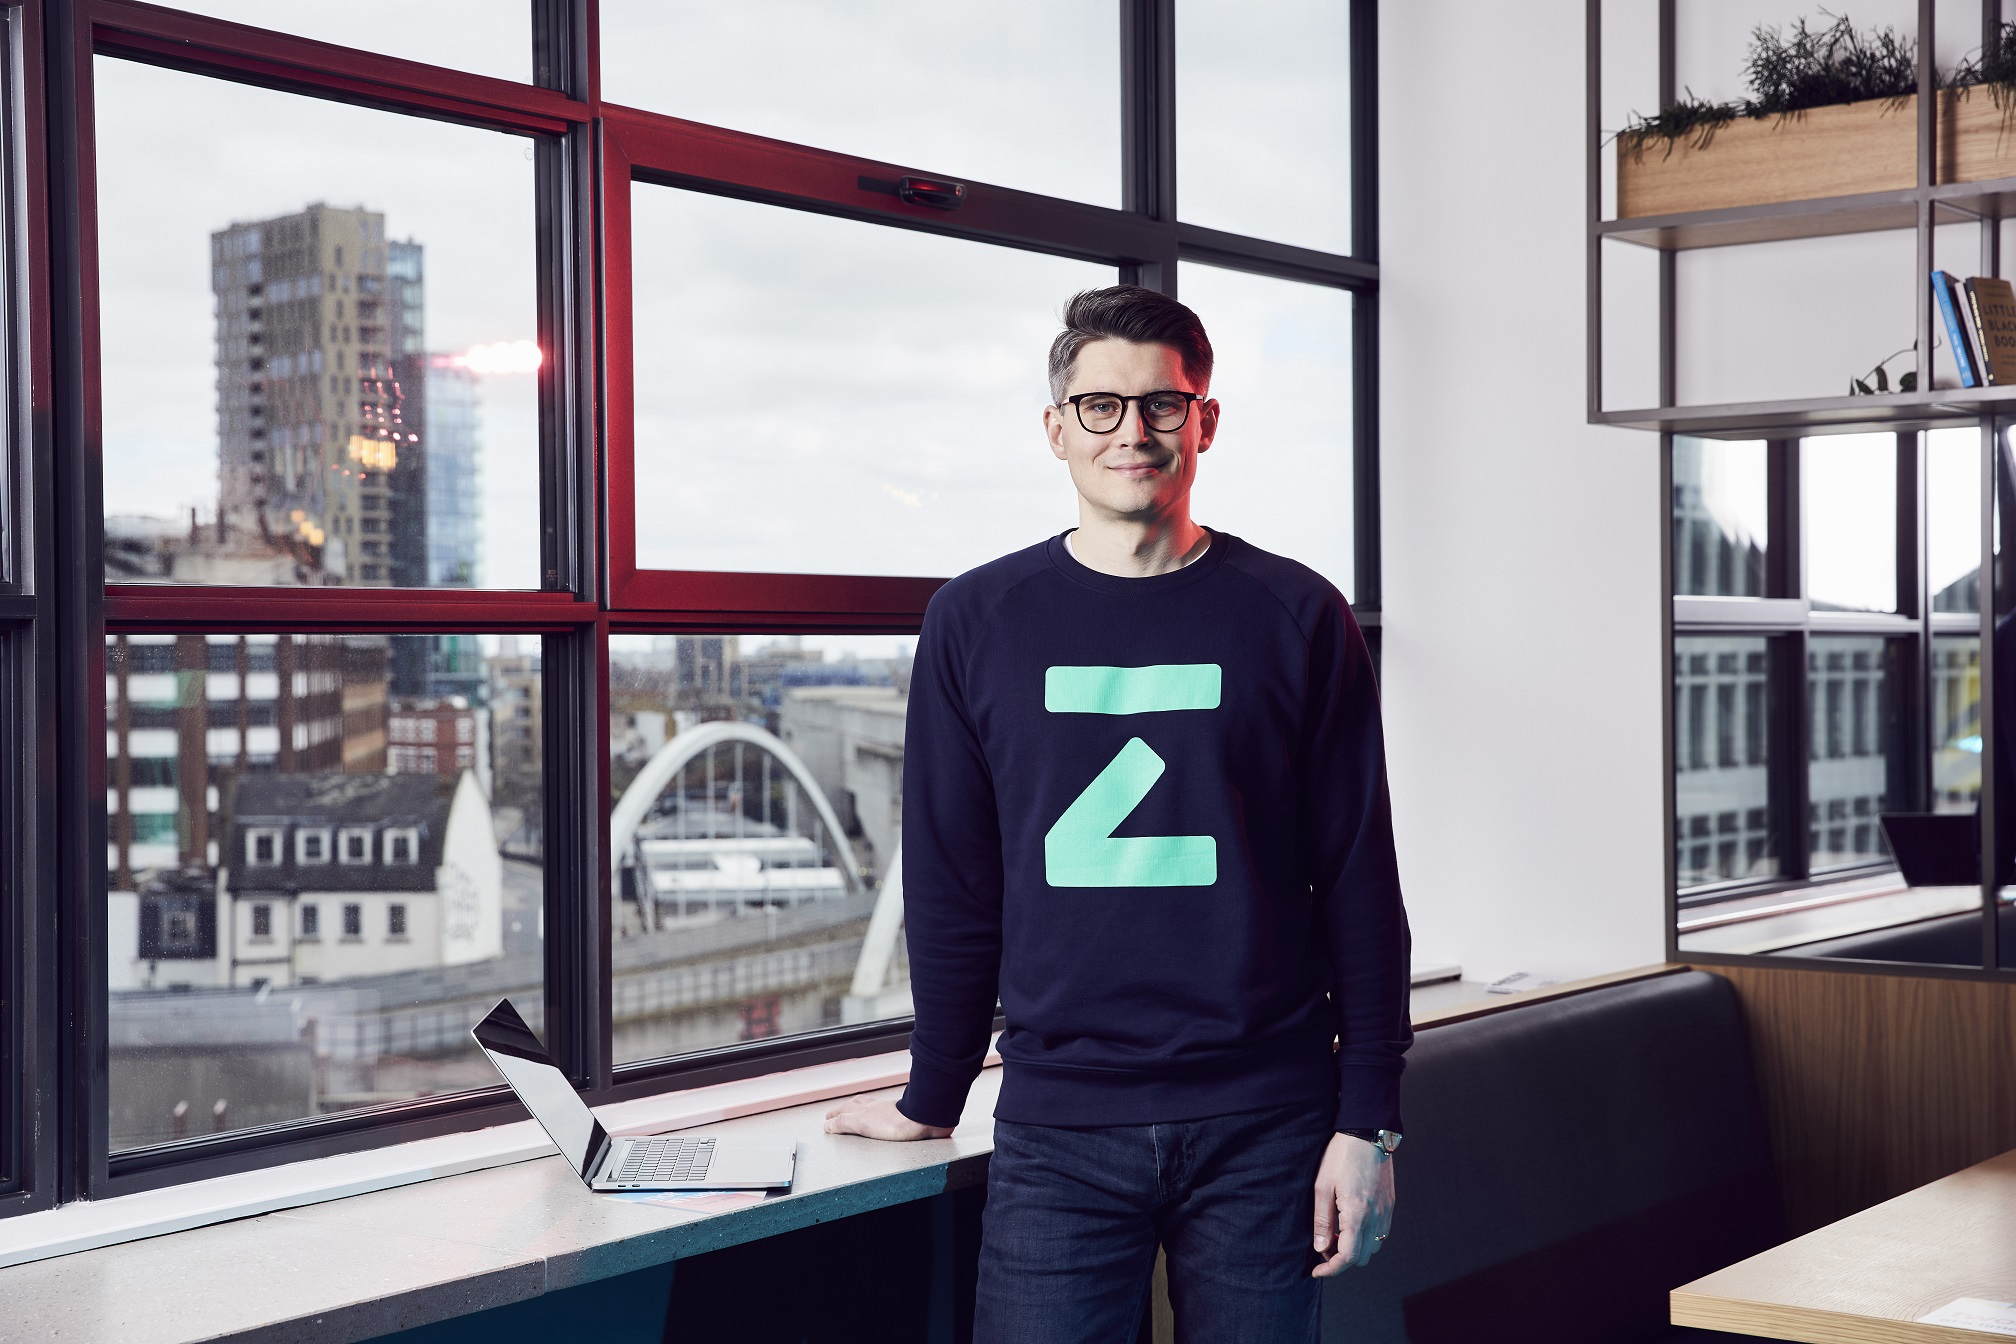 Zego's $1bn evaluation shows how fast-moving insurtechs can challenge leading players